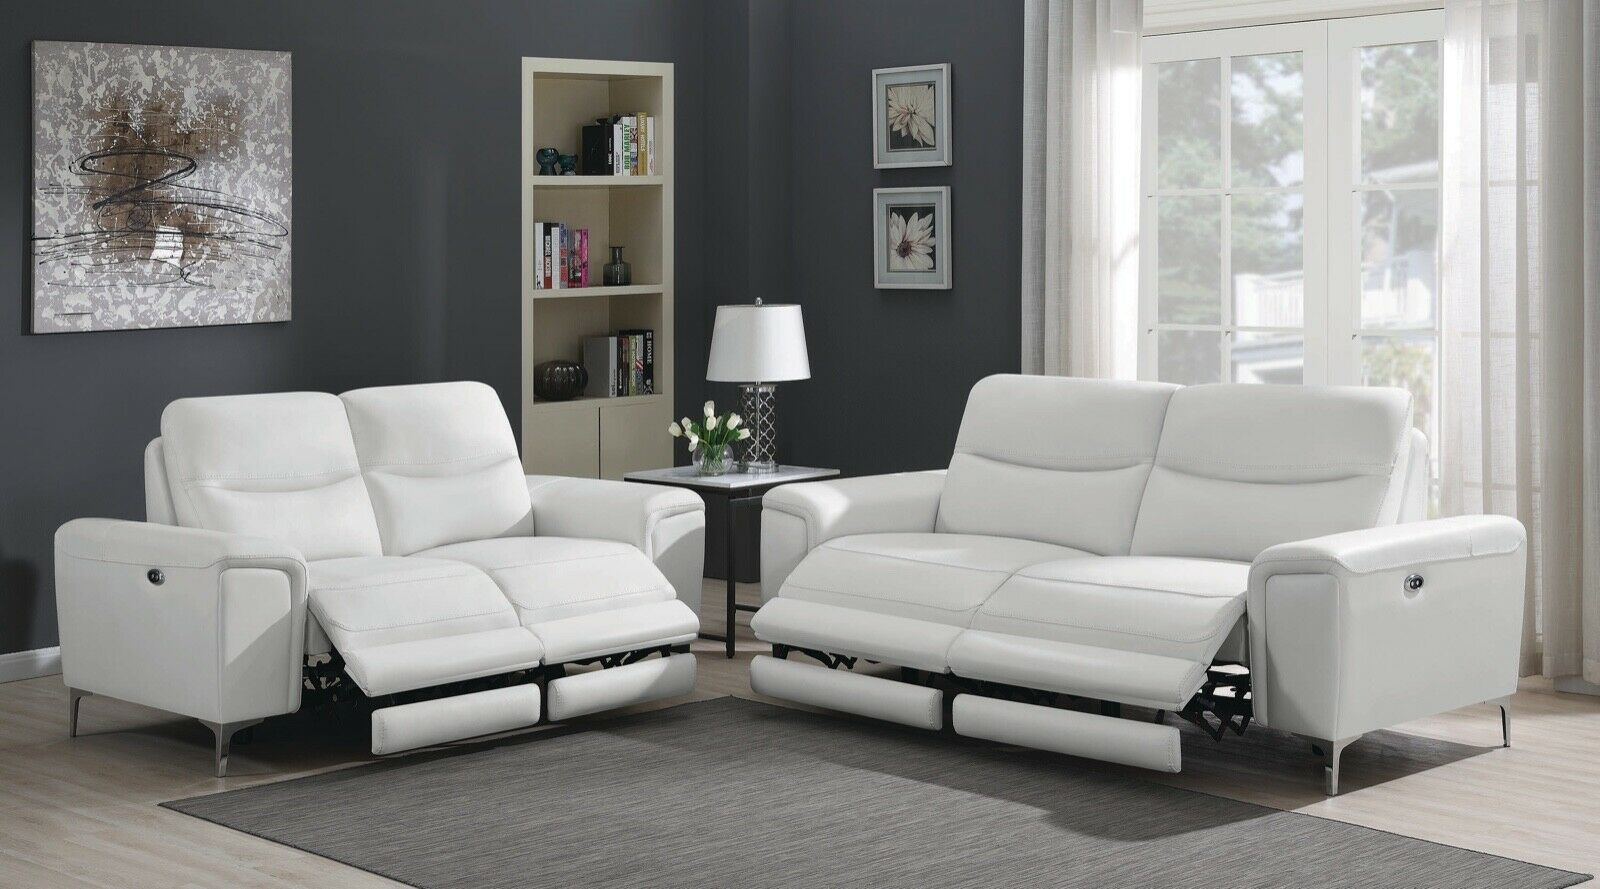 Top Grain White Leather Match Power Reclining Sofa Loveseat Livingroom Furniture